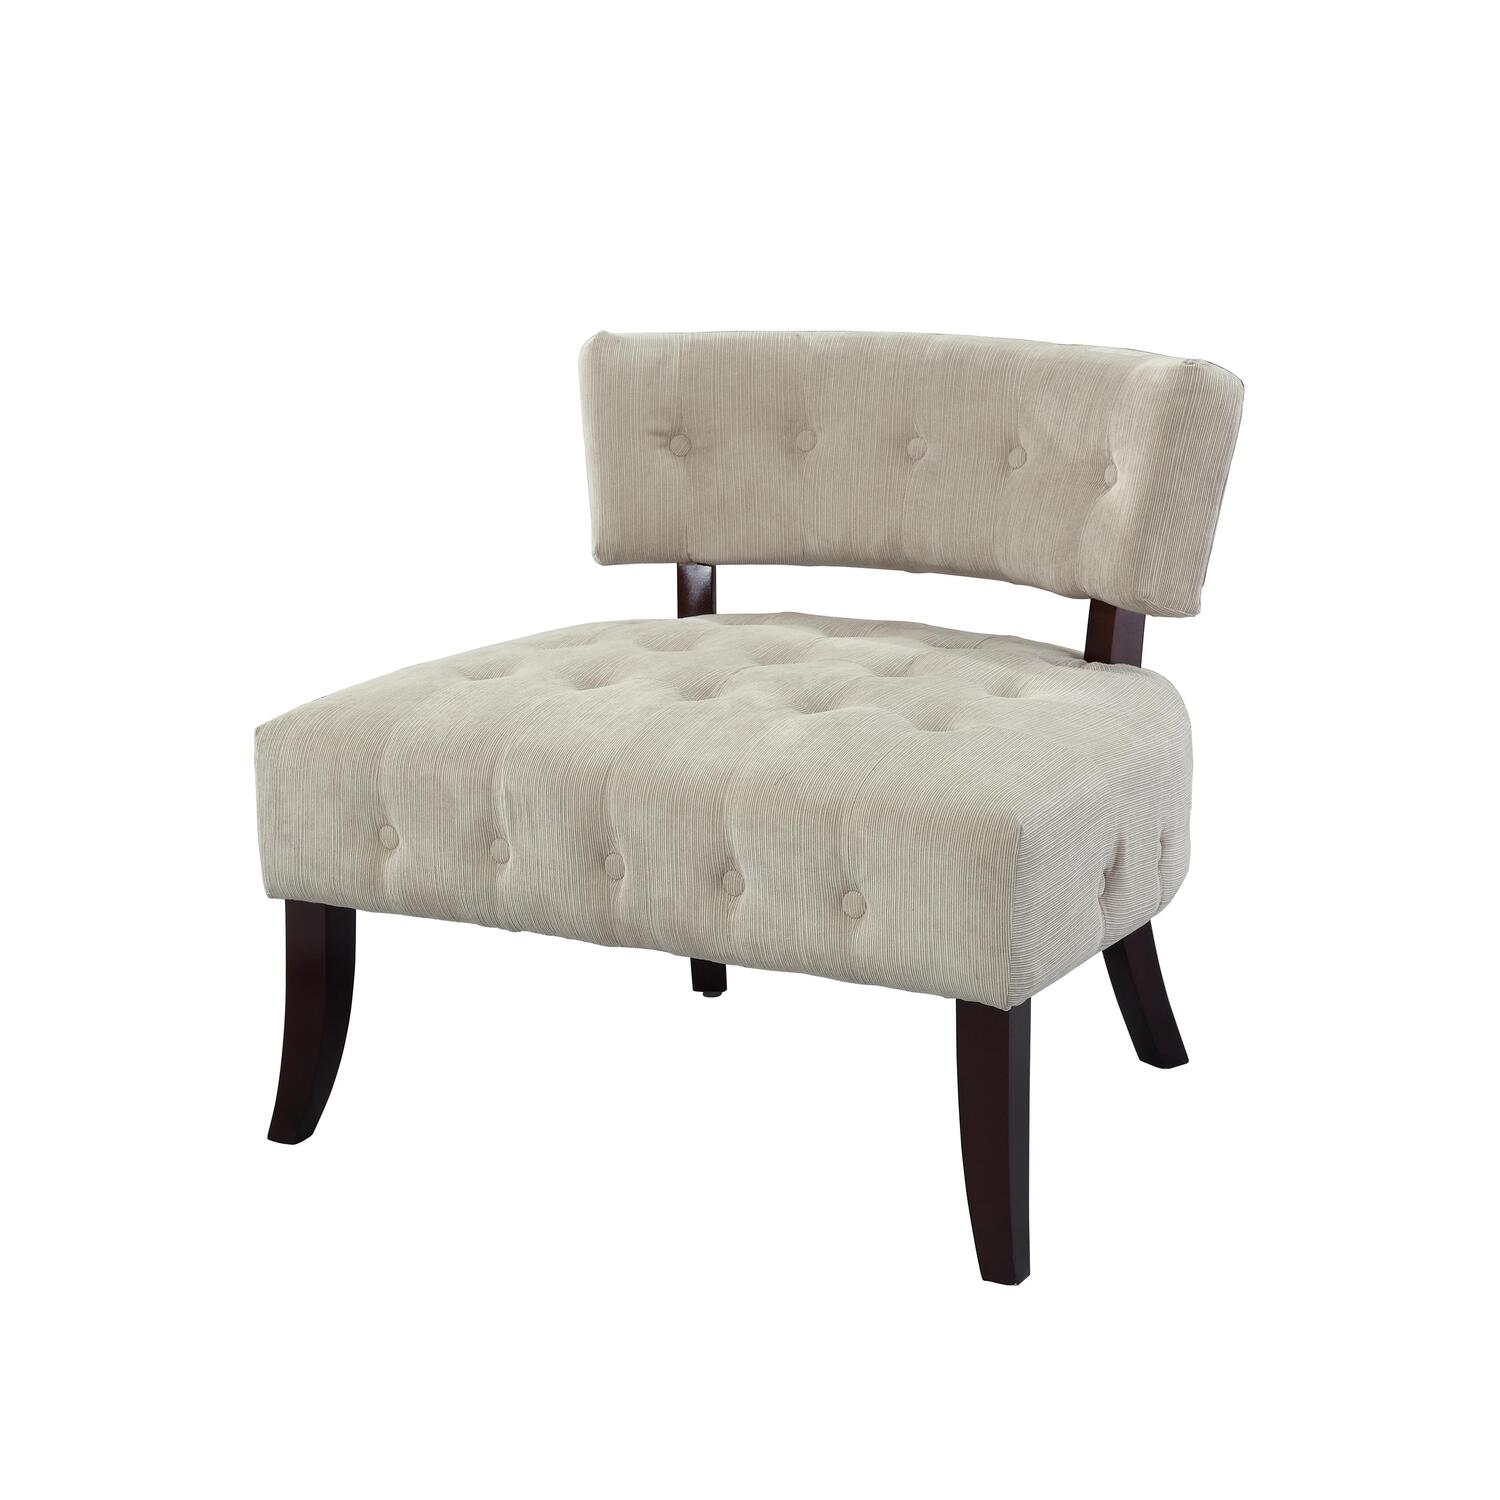 tufted accent chairs 1800 antique barber chair powell lady slipper by oj commerce 249 00